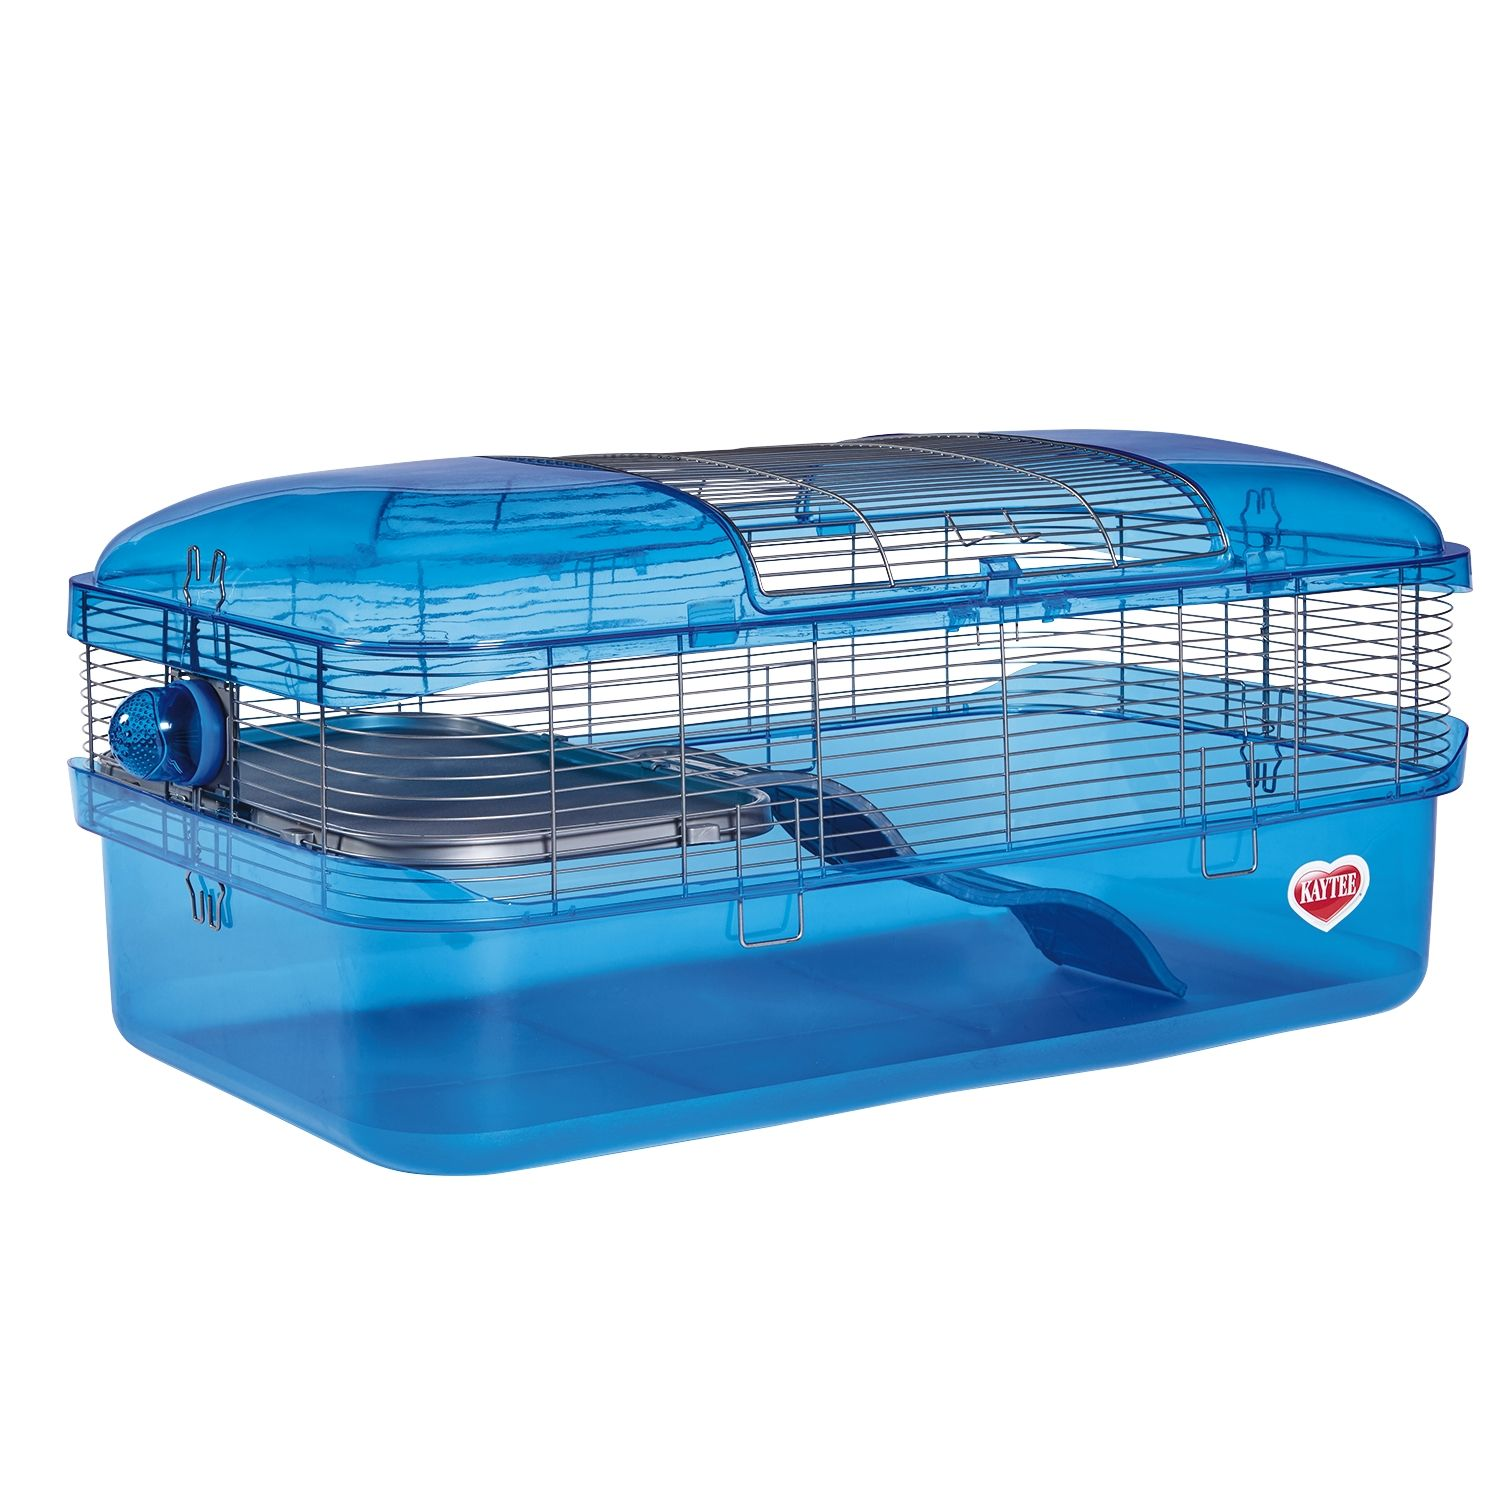 Crittertrail Super Habitat Small Animal Cages Kaytee Hamster Habitat Small Animal Cage Small Pets